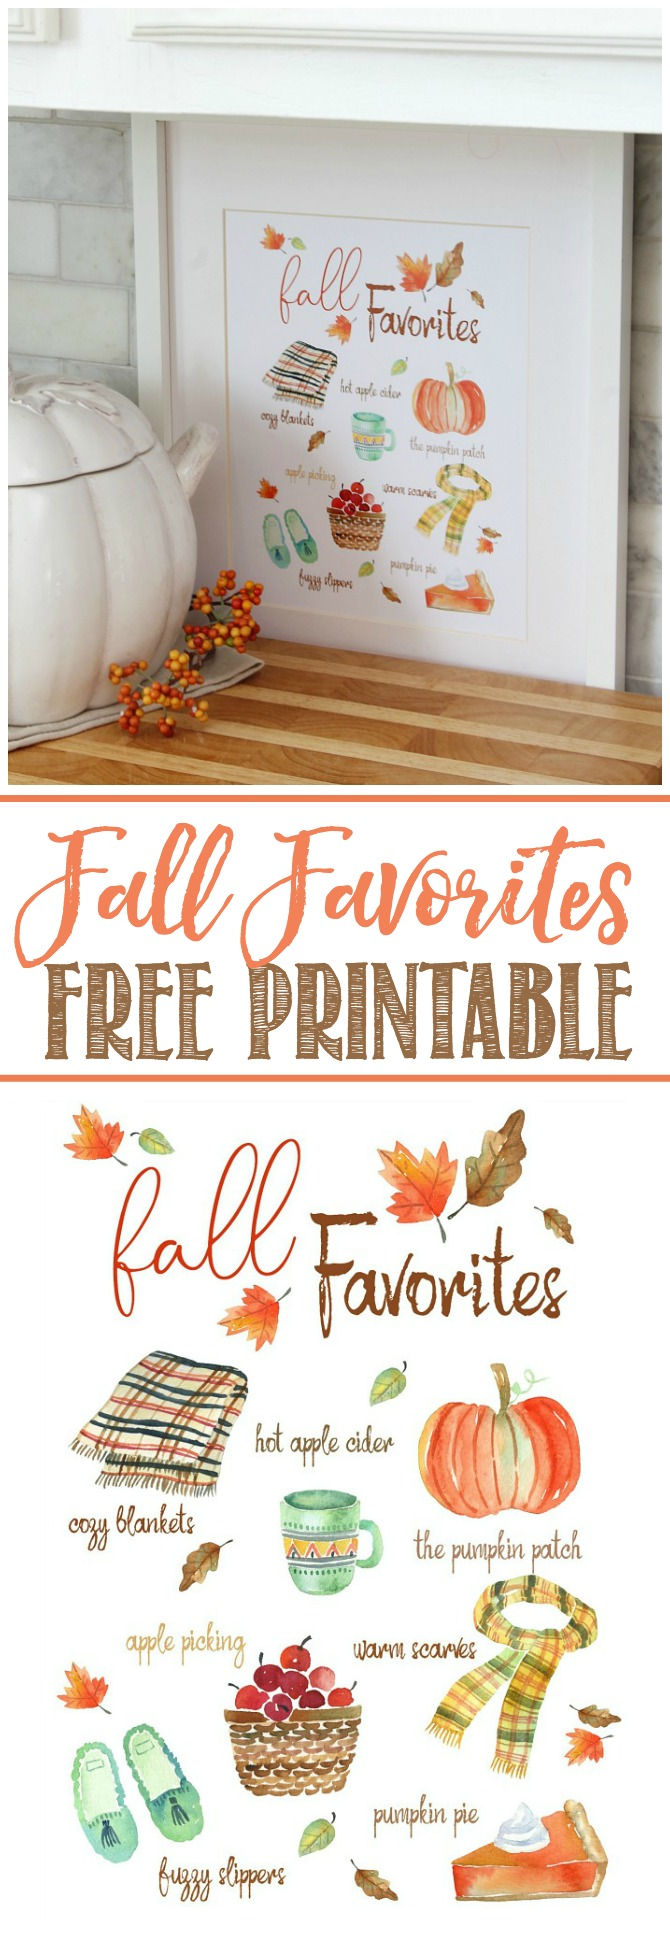 Fall favorites free fall printable. Watercolor images of favorite fall activities and items.